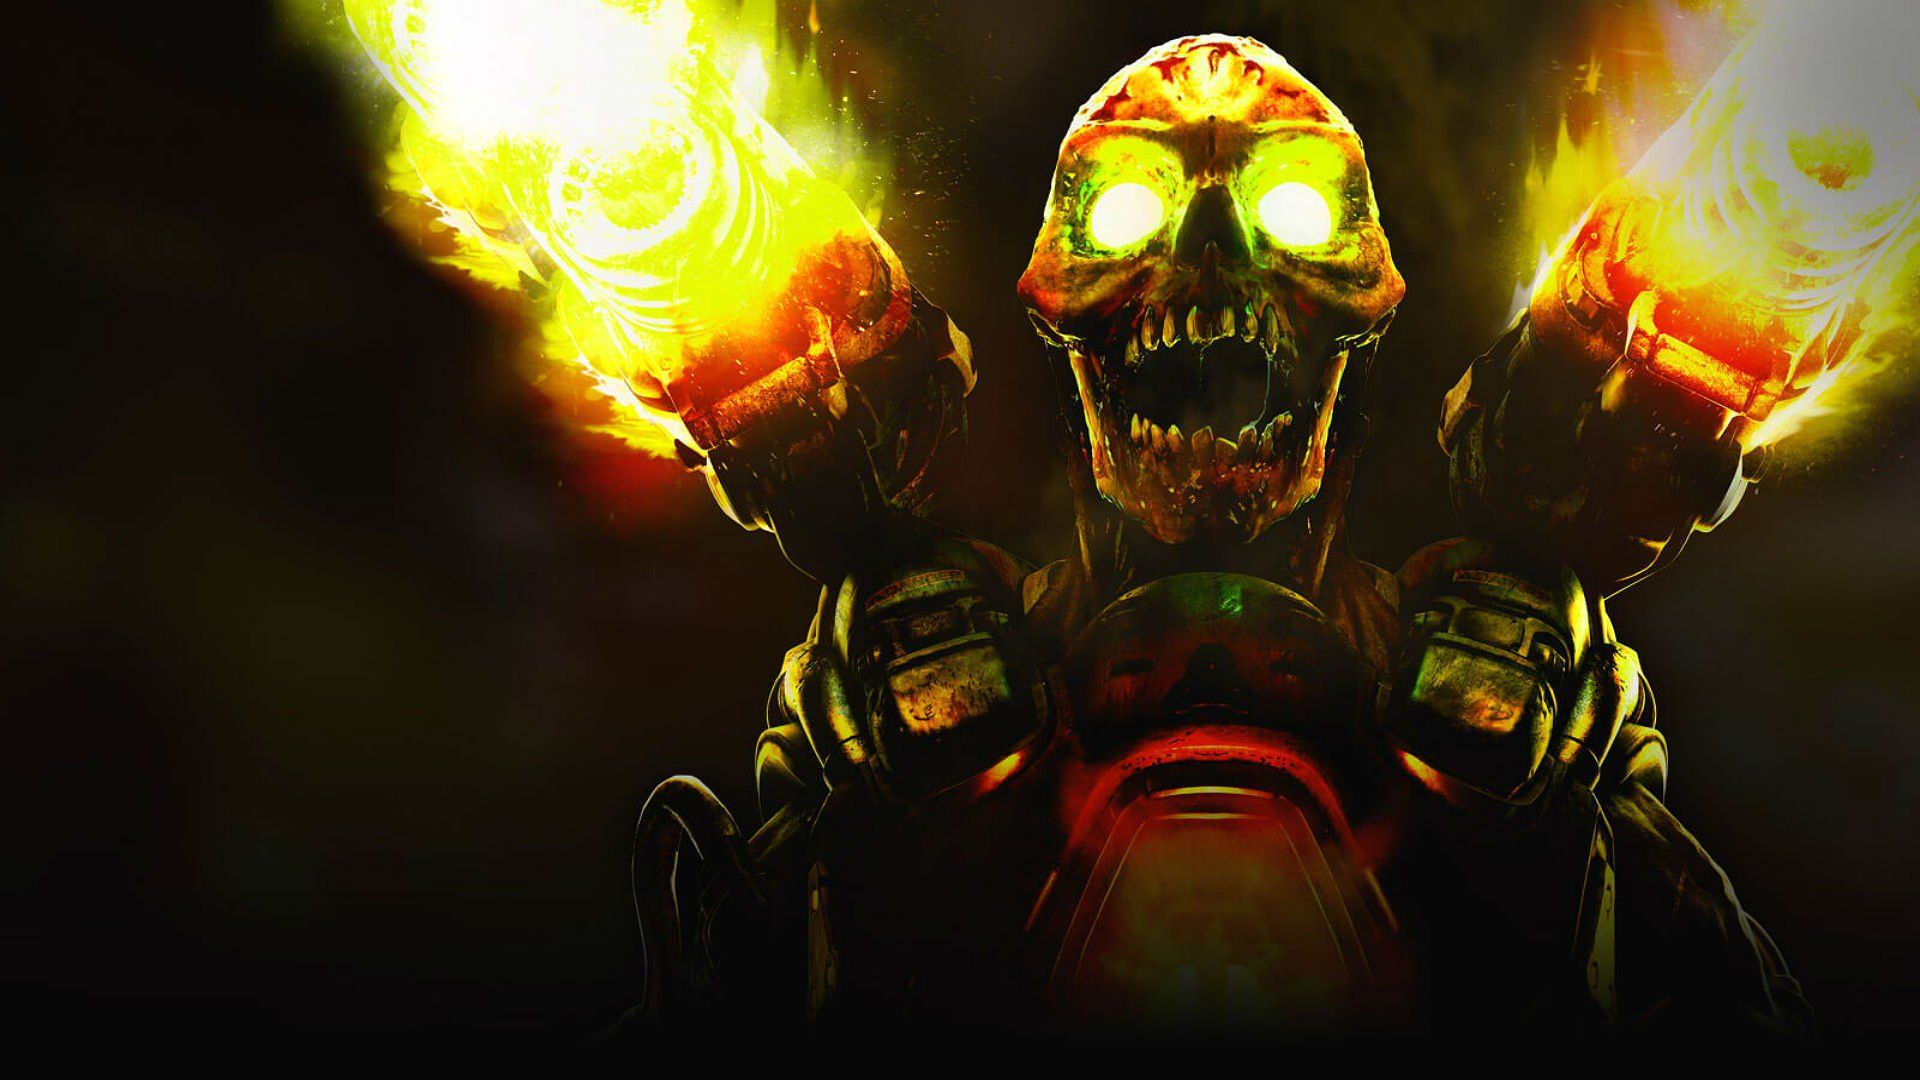 free live wallpaper doom apk download for android getjar 1920a—1080 doom 4 wallpapers